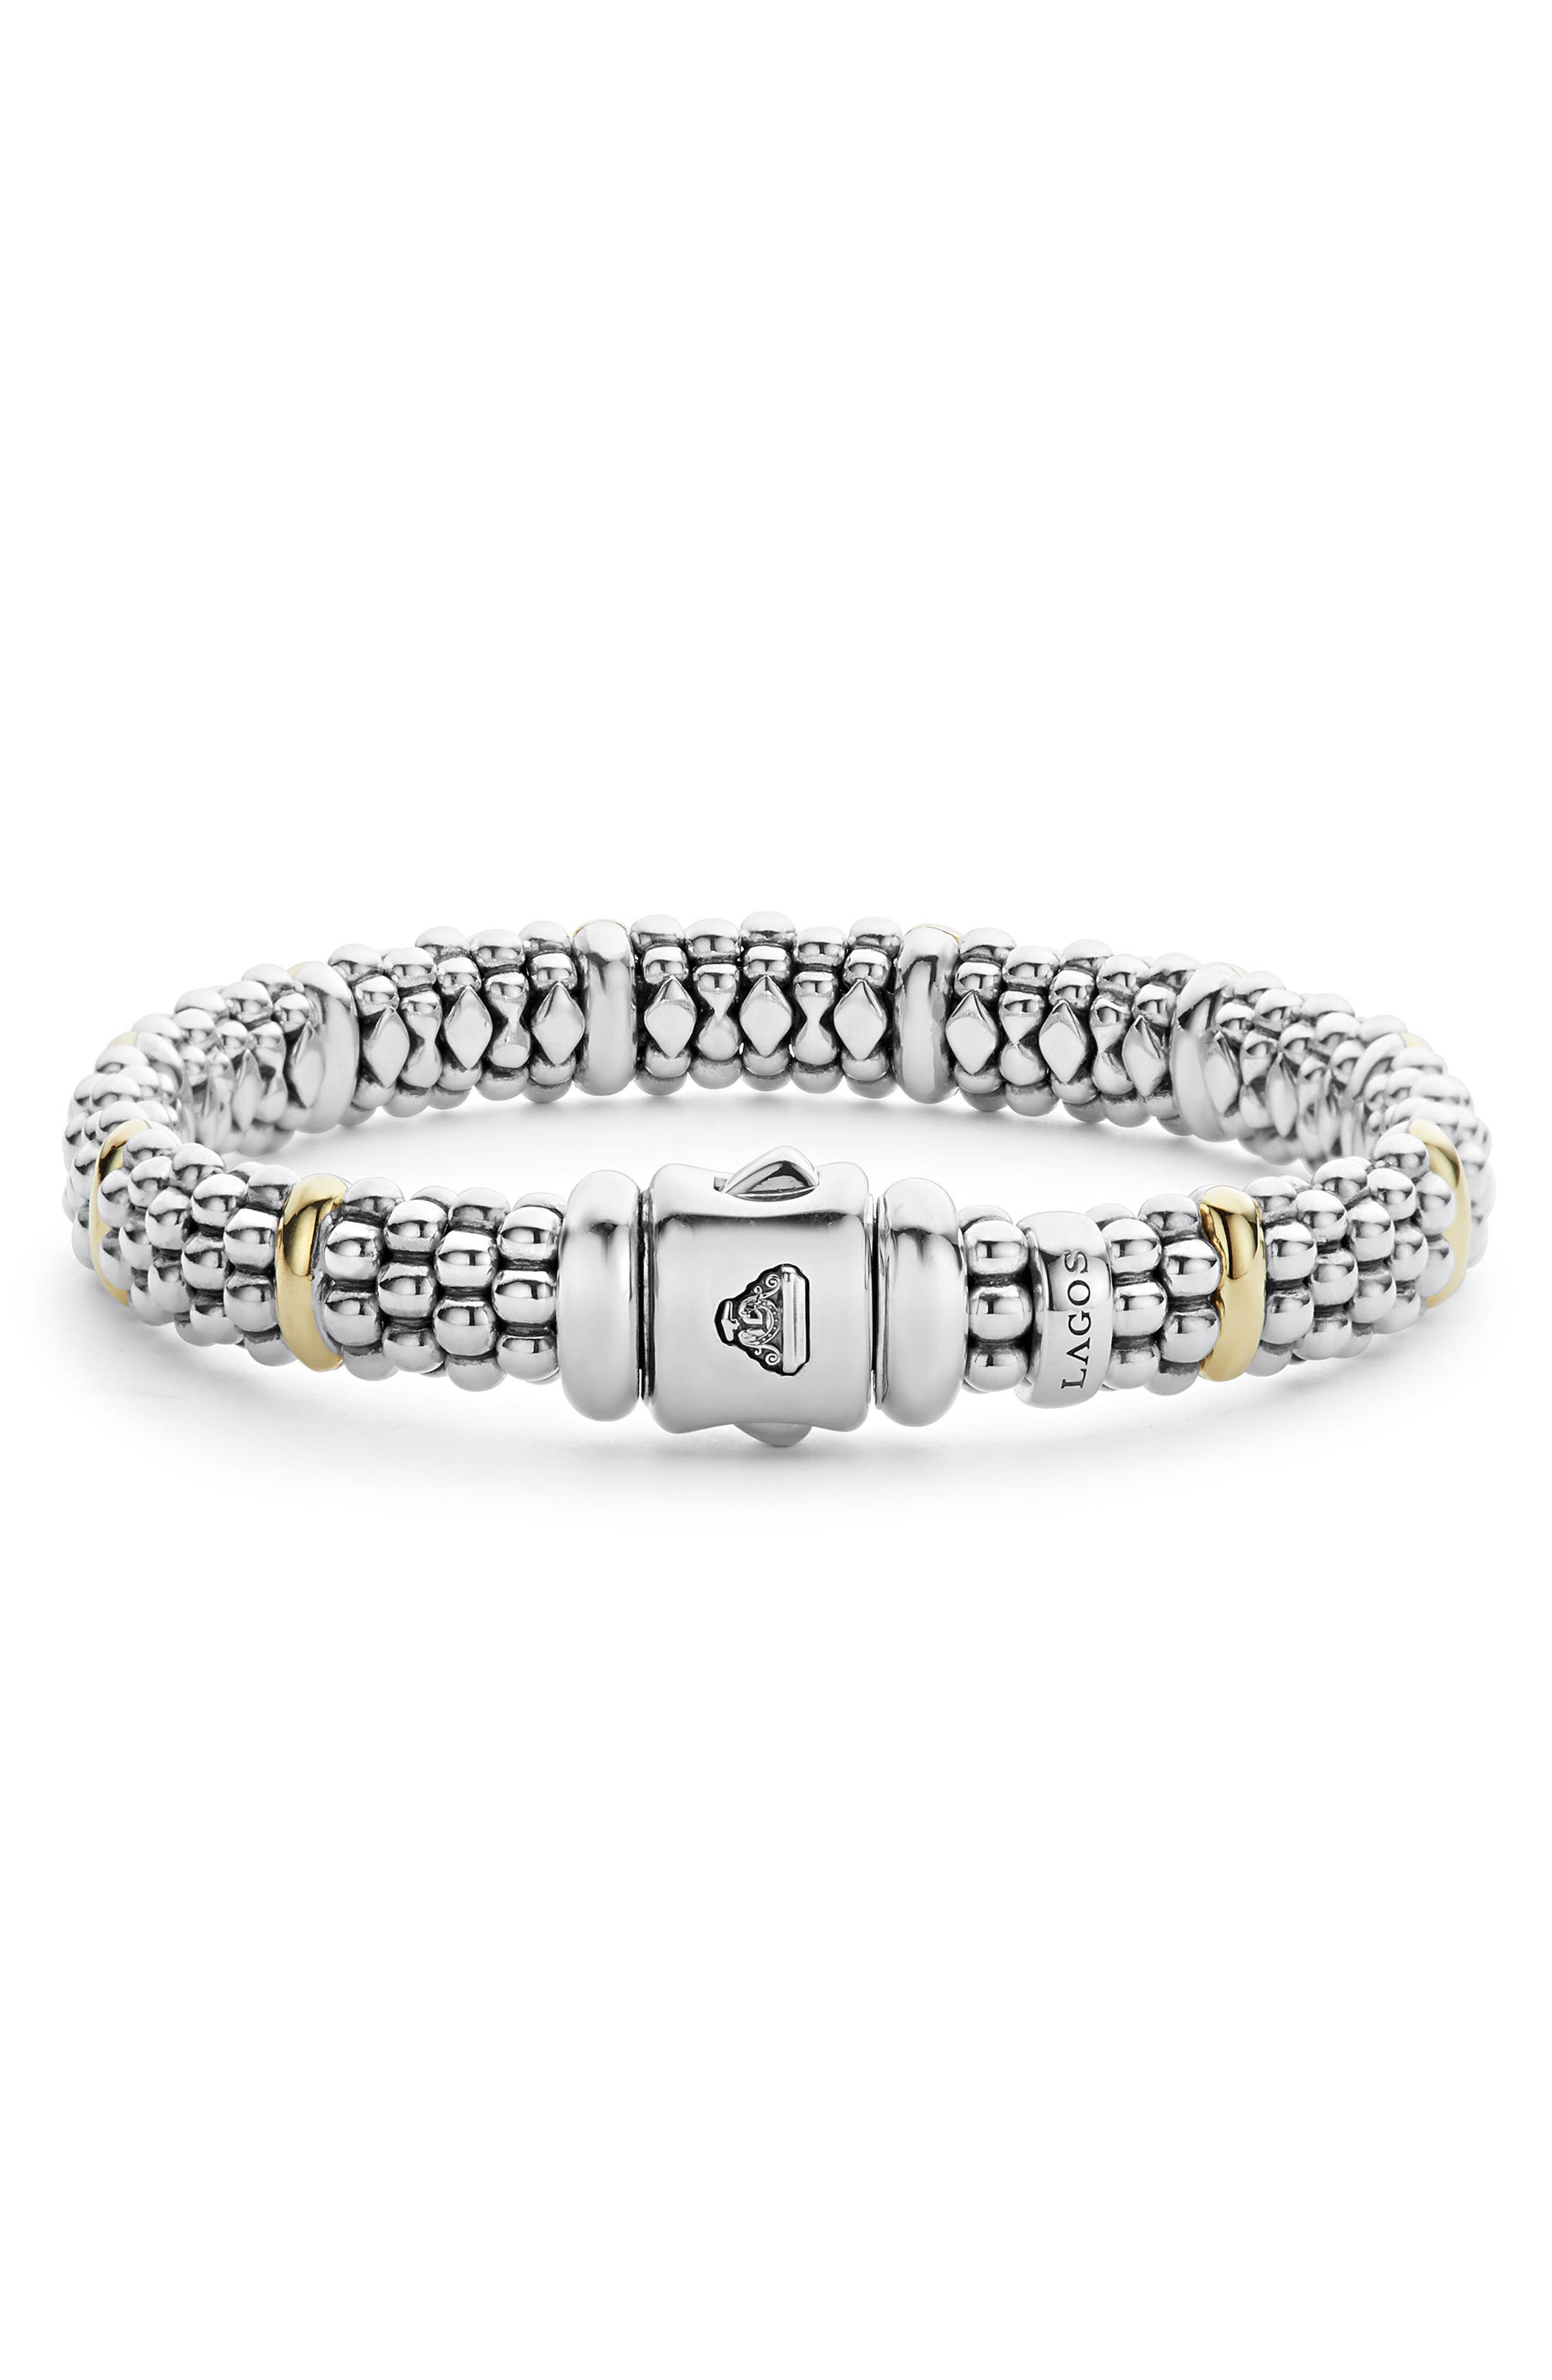 Oval Caviar Rope Bracelet,                             Alternate thumbnail 3, color,                             Silver/ Gold